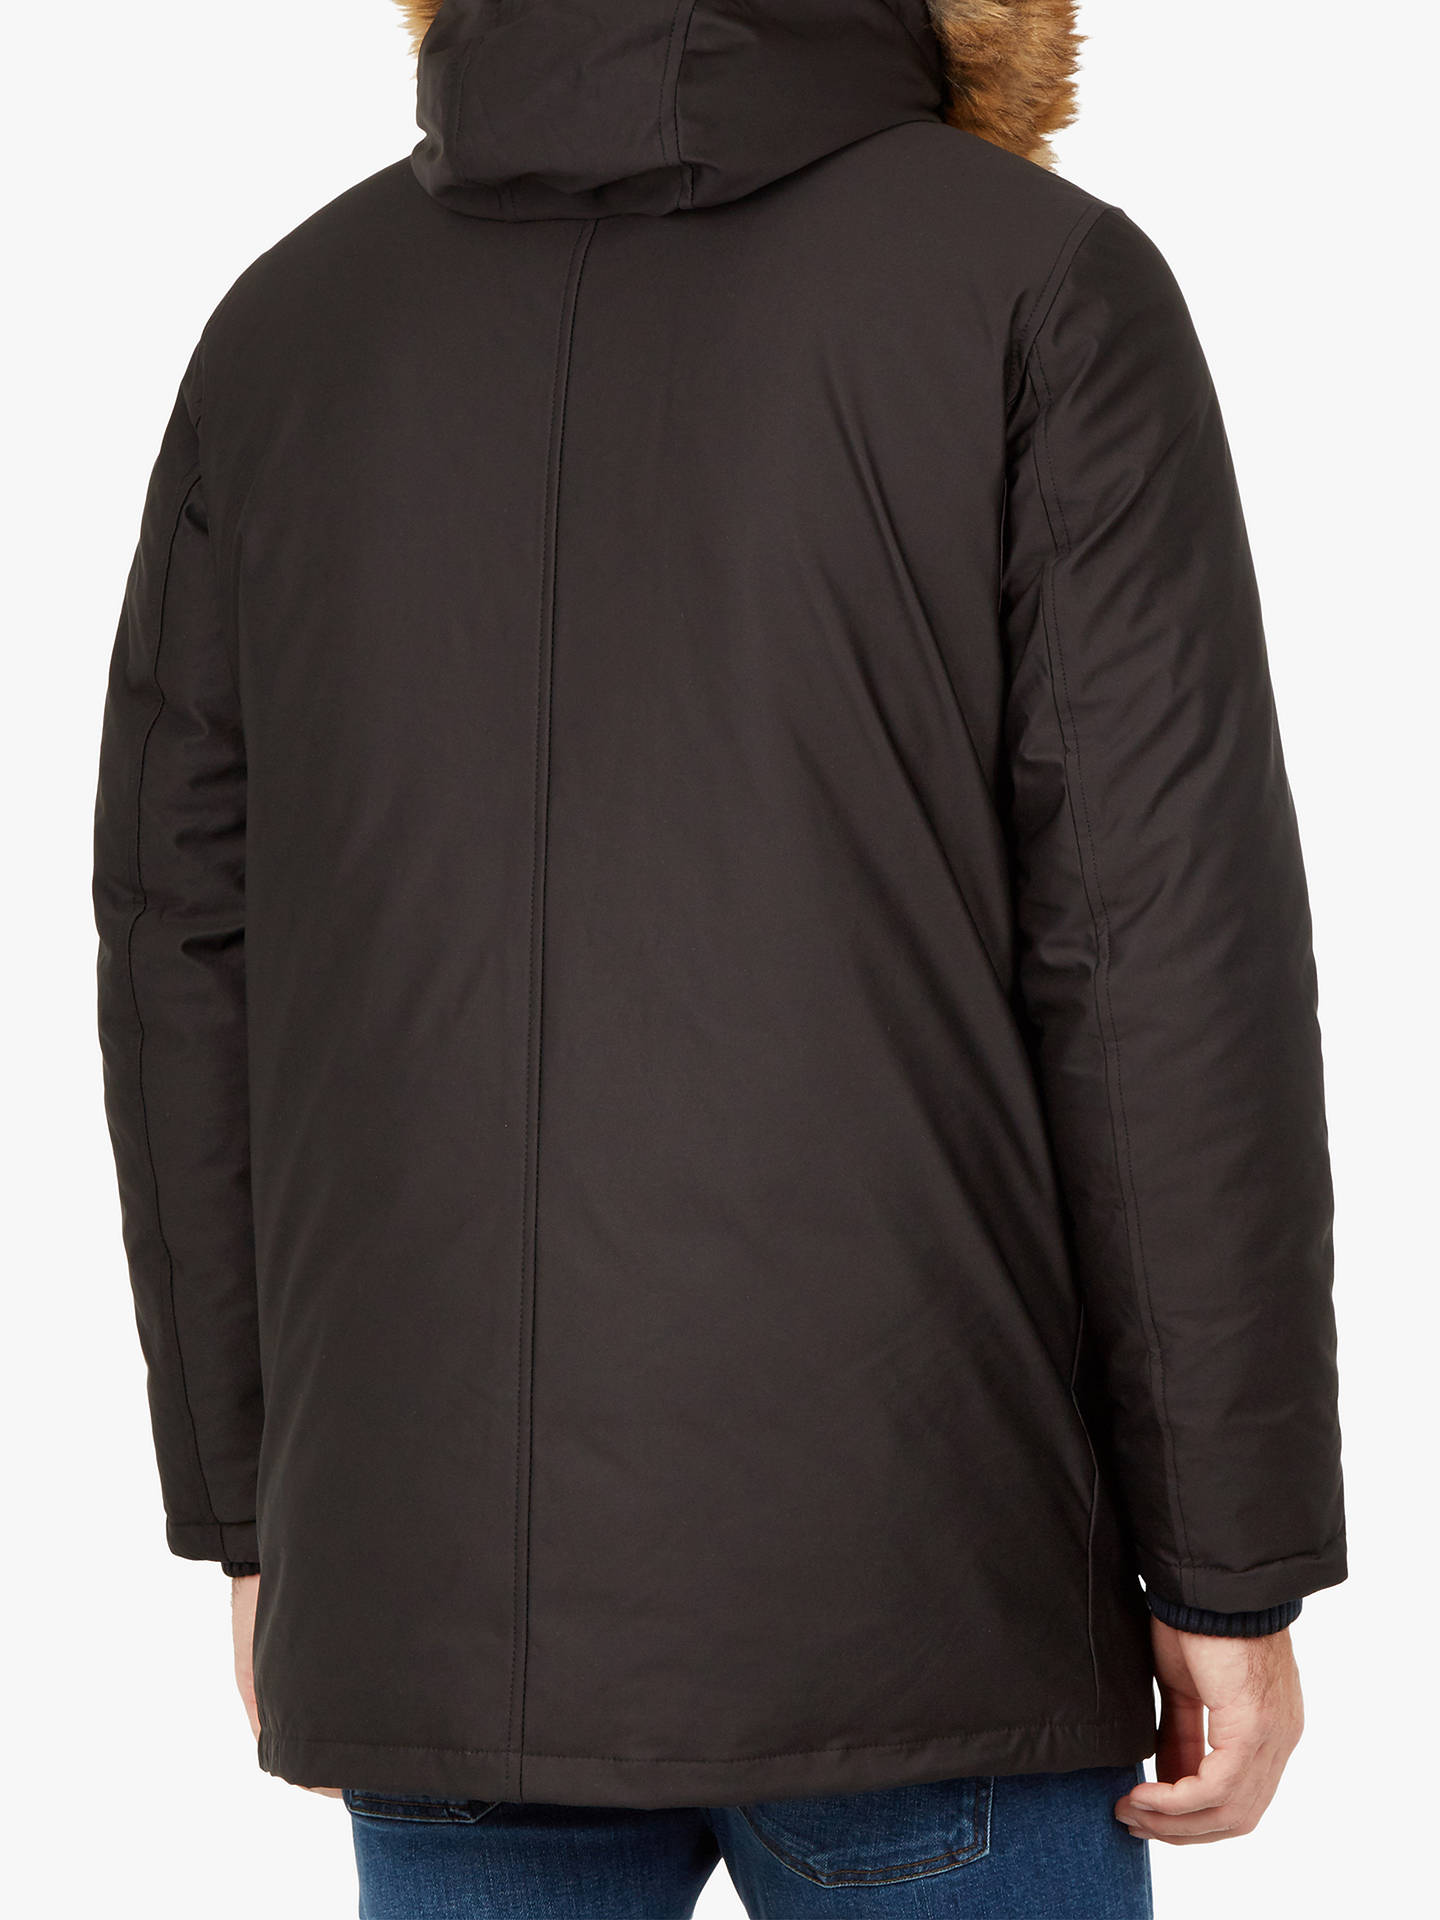 BuyTed Baker Gouda Faux Fur Hooded Parka, Black, XXL Online at johnlewis.com